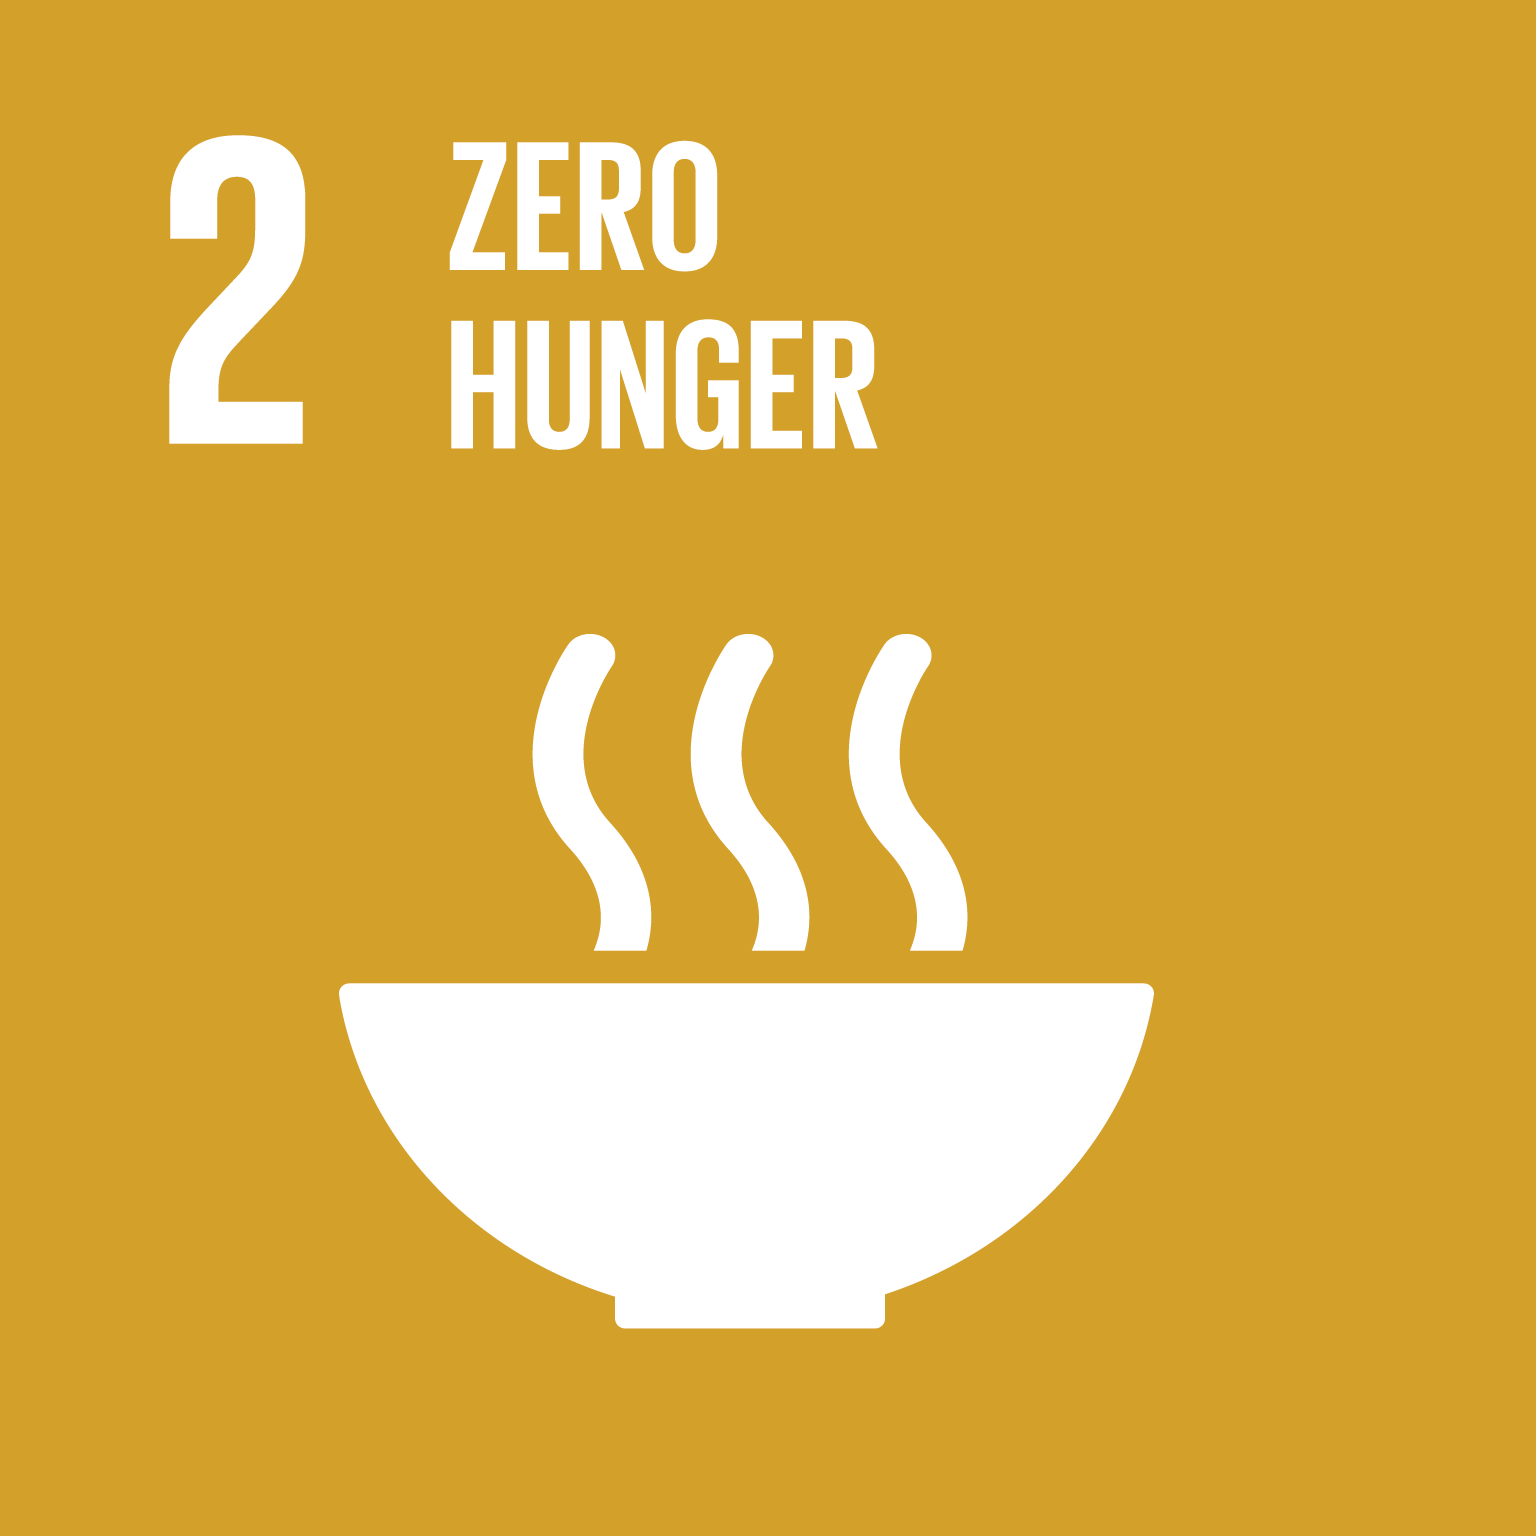 Goal 2: Zero Hunger, the text of this infographic is listed below